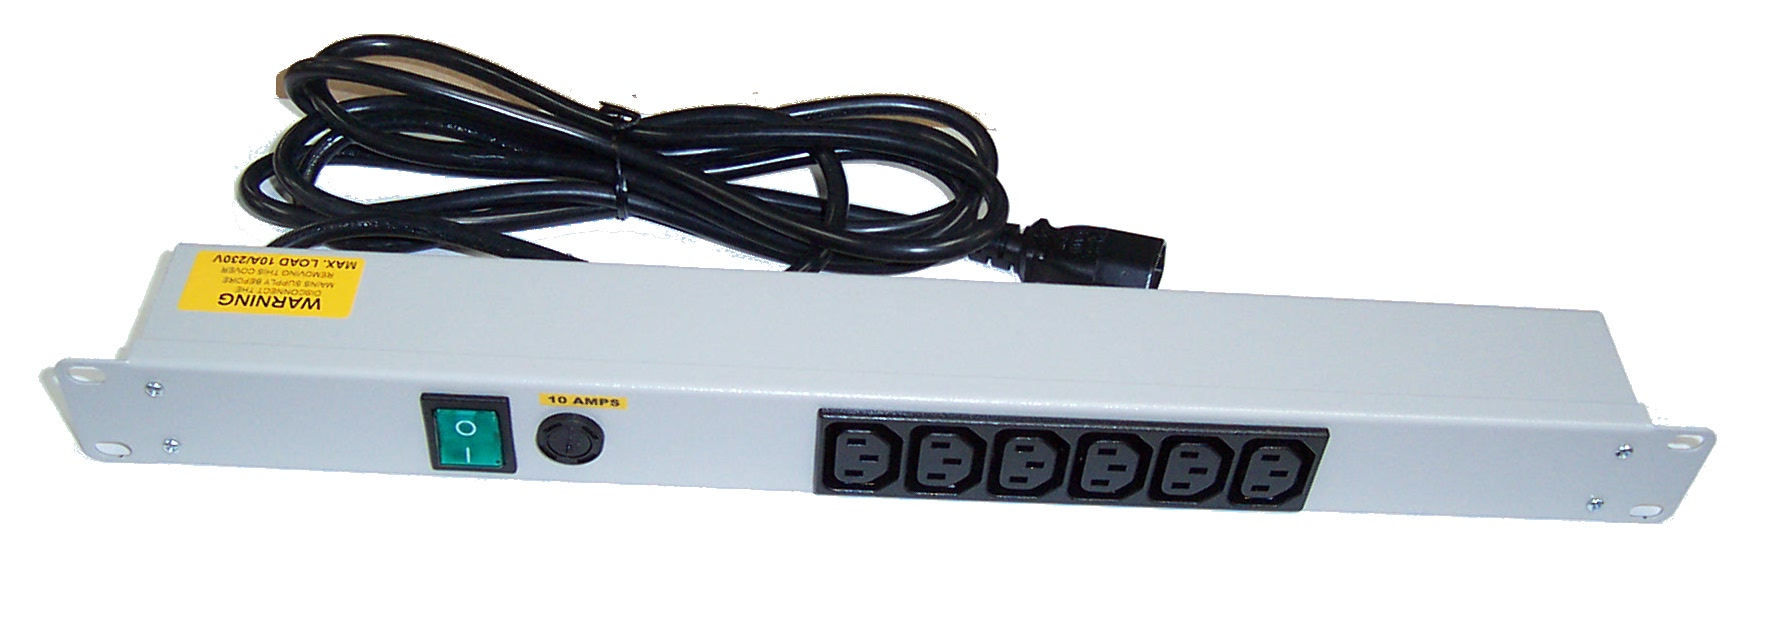 New Connectix 92272 10AMPS 6 Port IEC C14 Power Strip